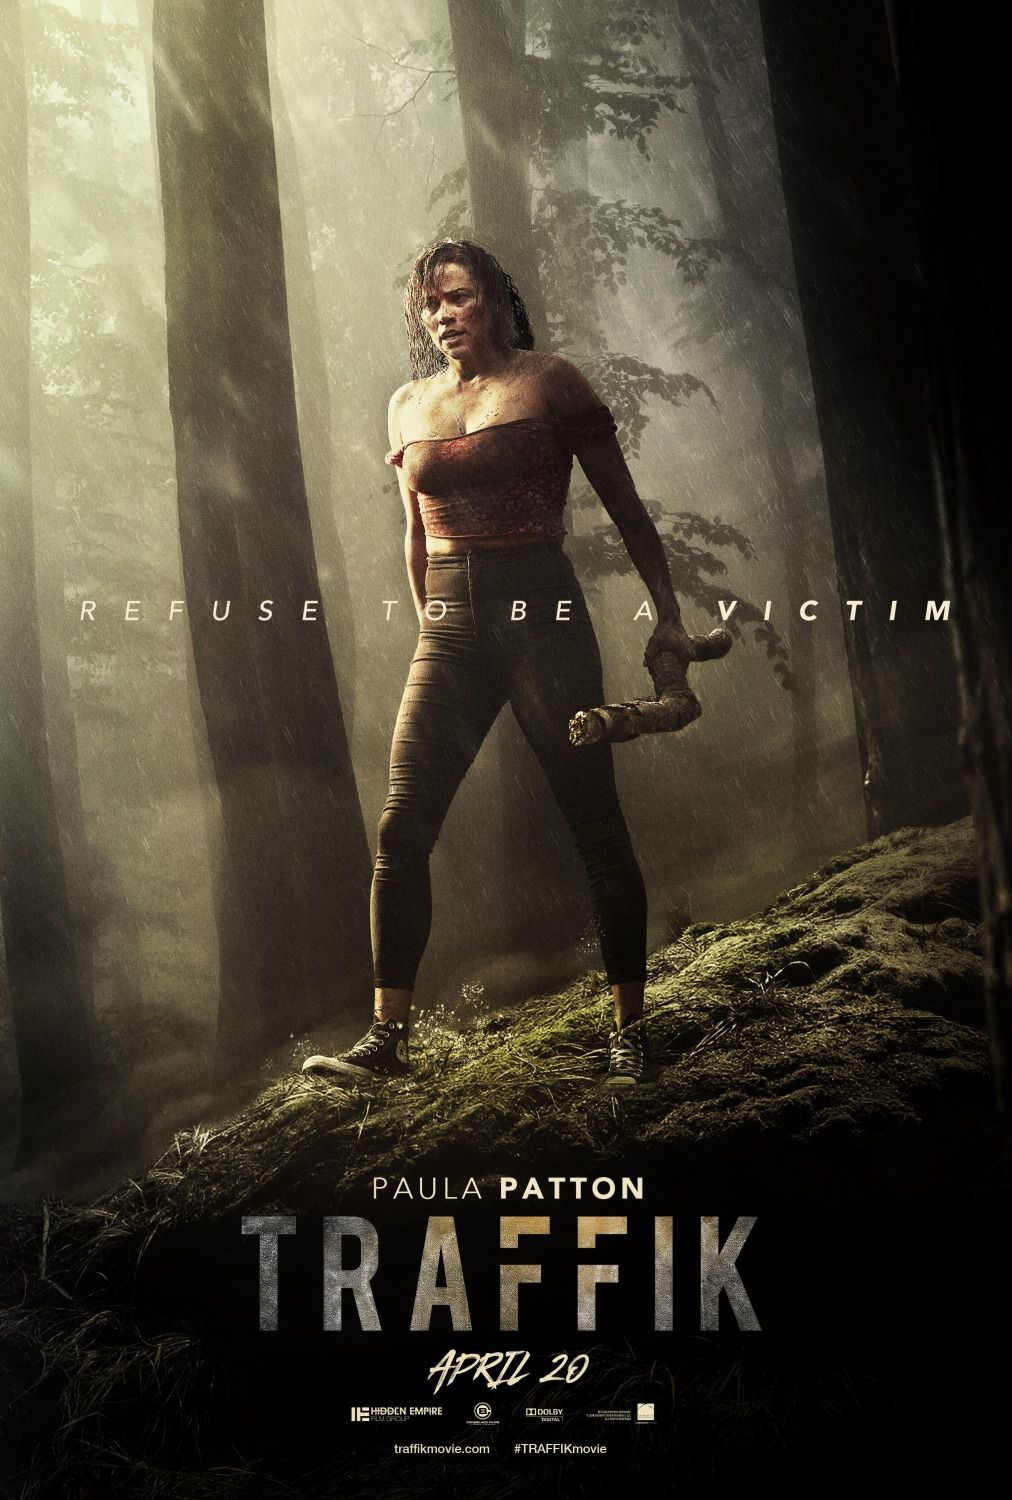 Traffik - refuse to be a victim - Paula Patton, Omar Epps, Missi Pyle, Laz Alonso - poster 2018